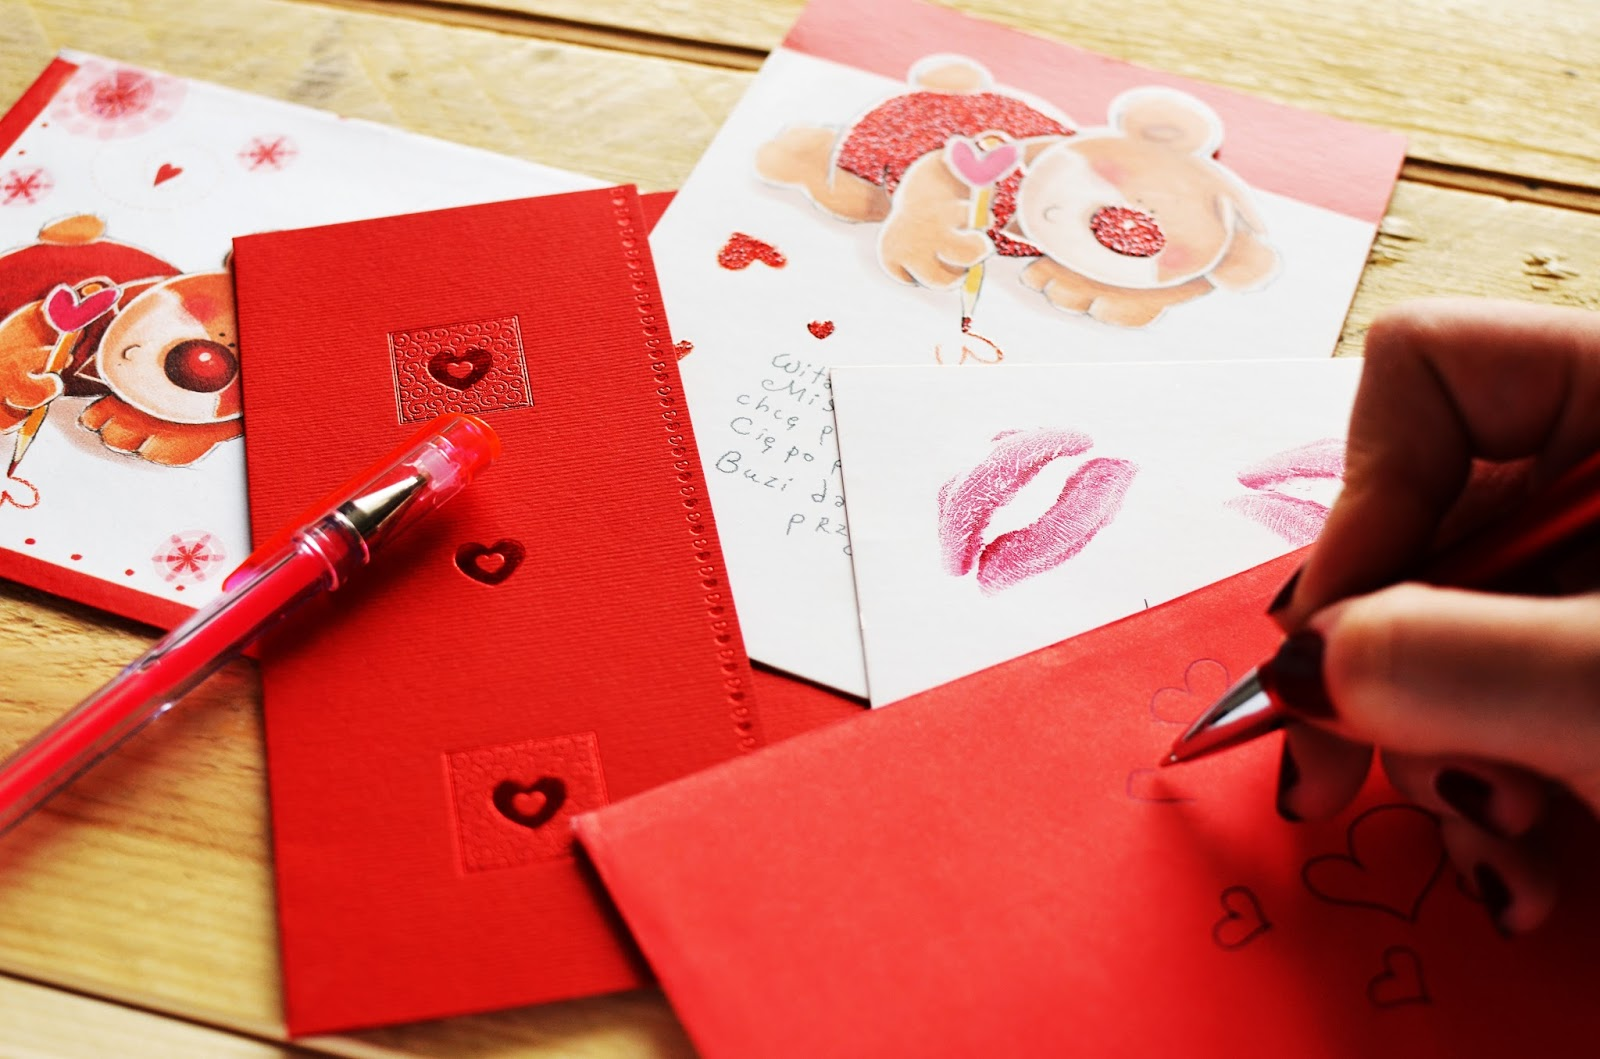 Fun things to do on Valentine's Day